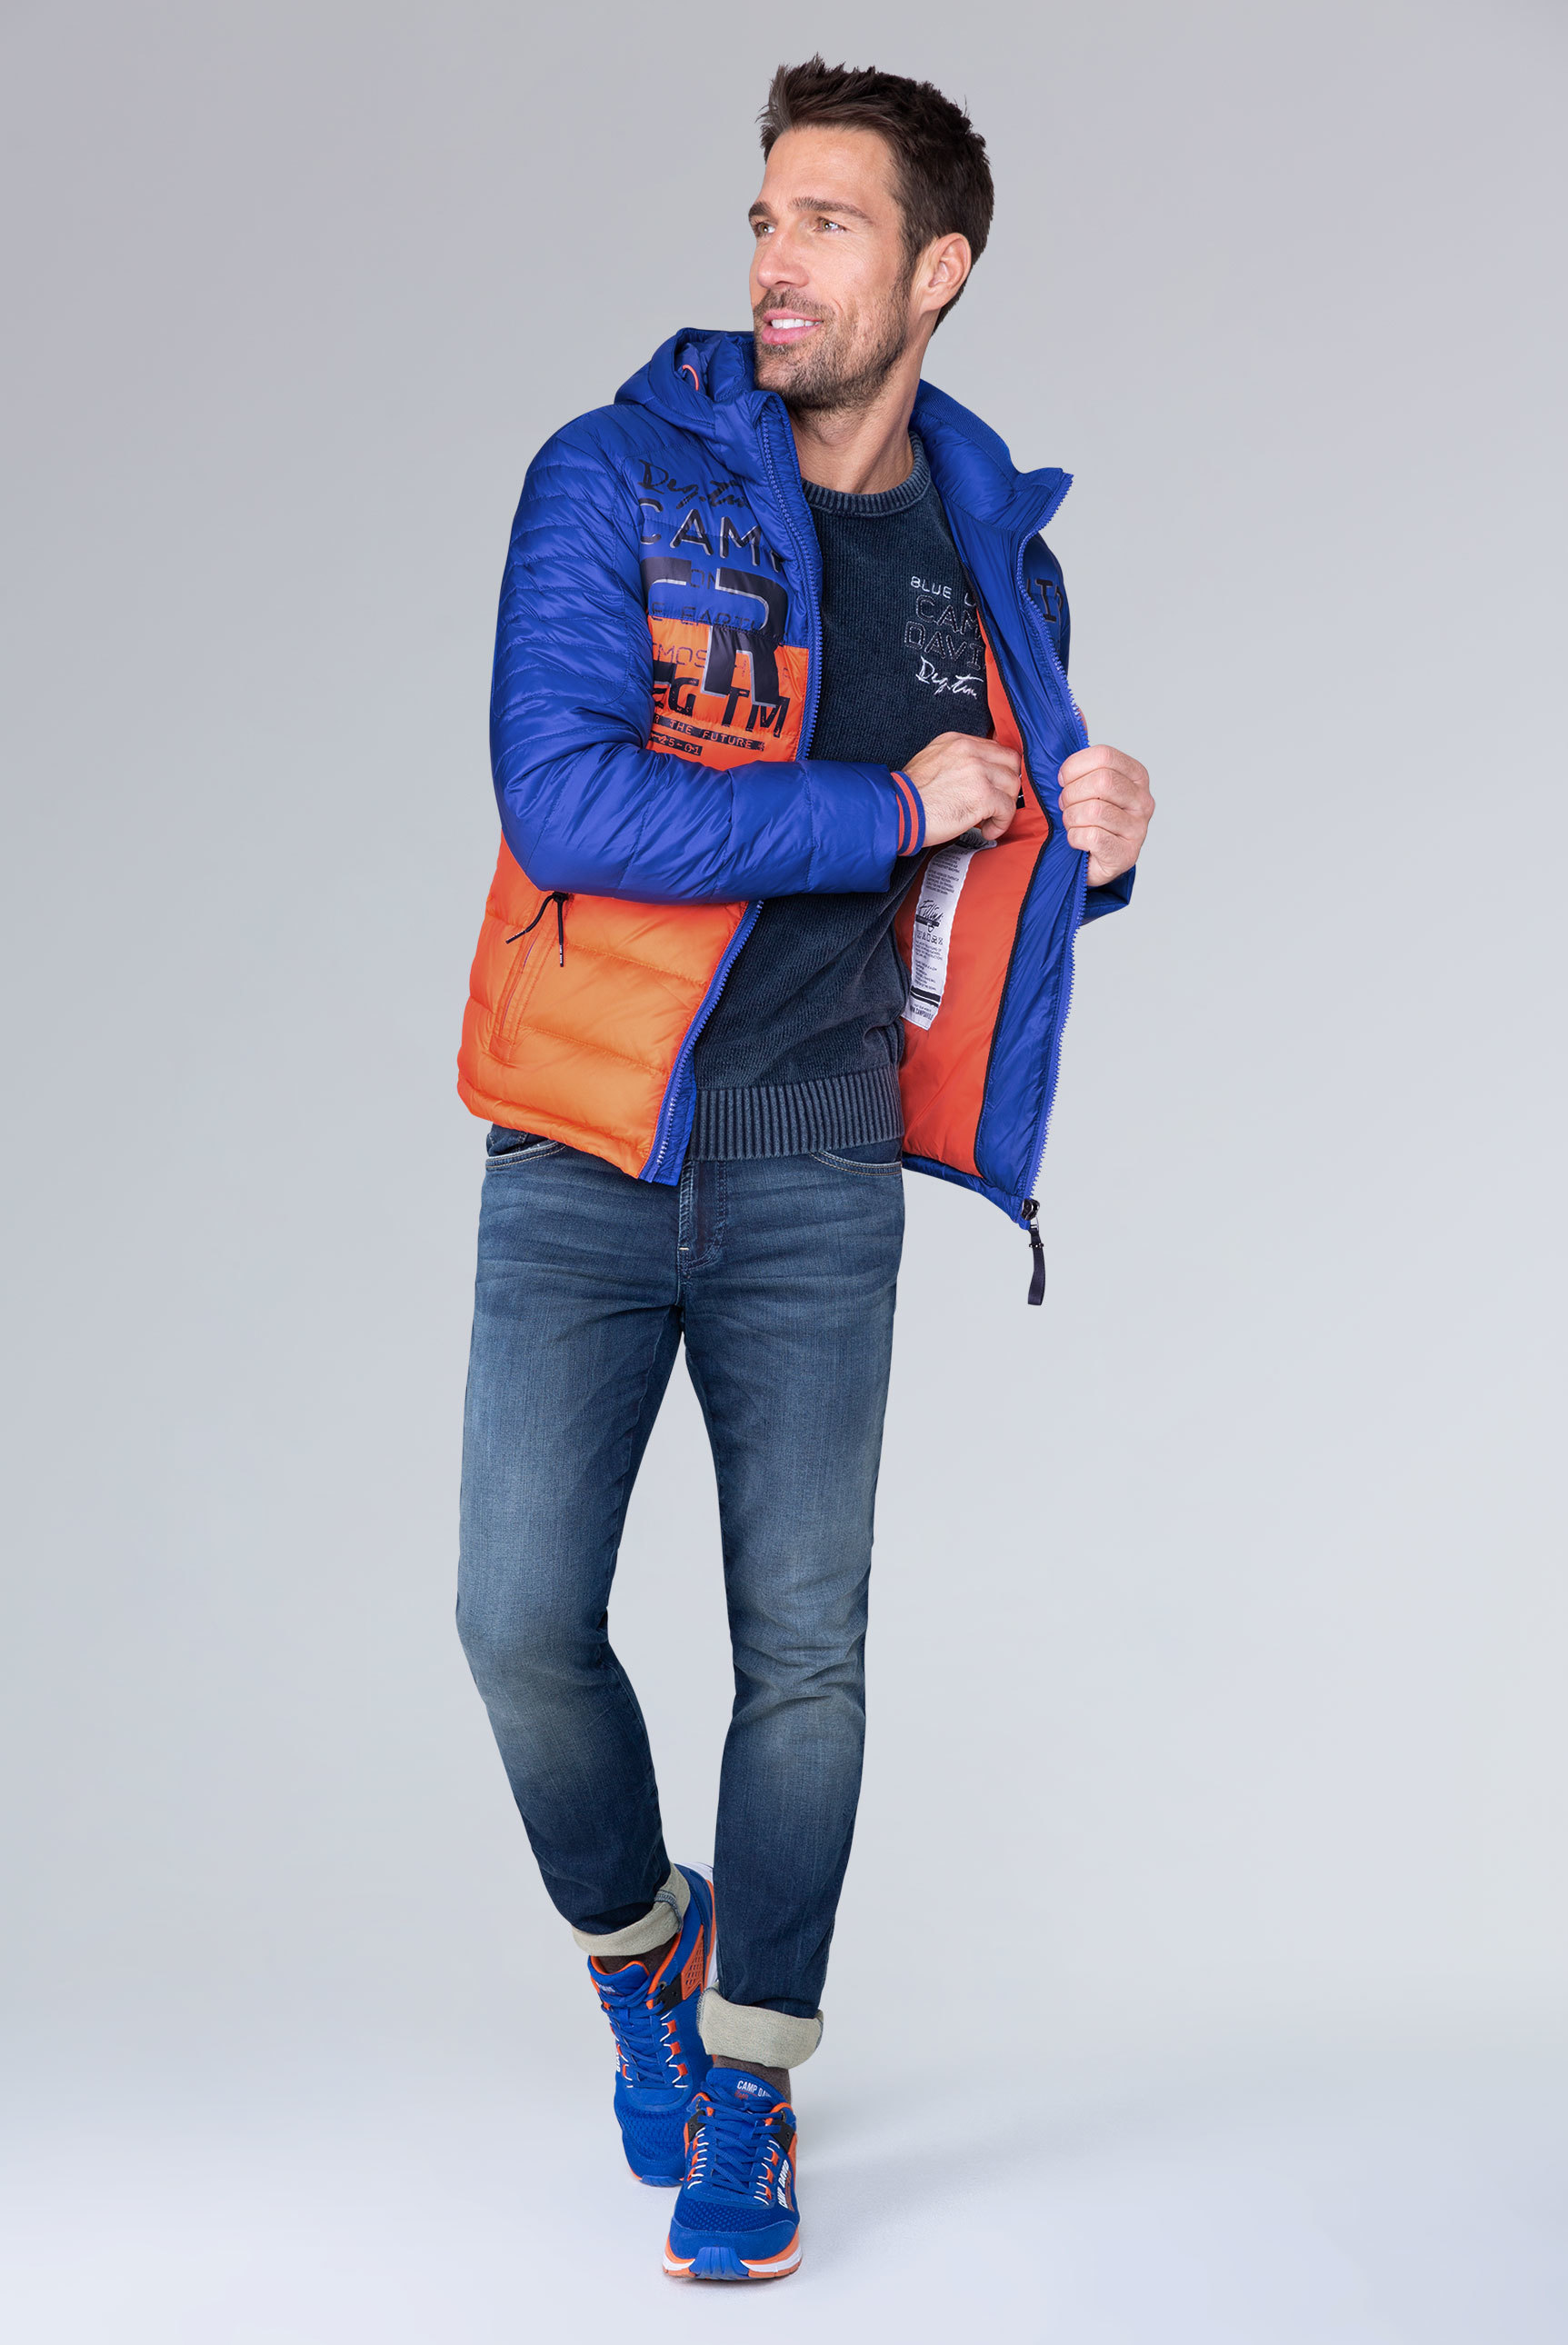 Daunenjacke mit Colour Blocking und Prints